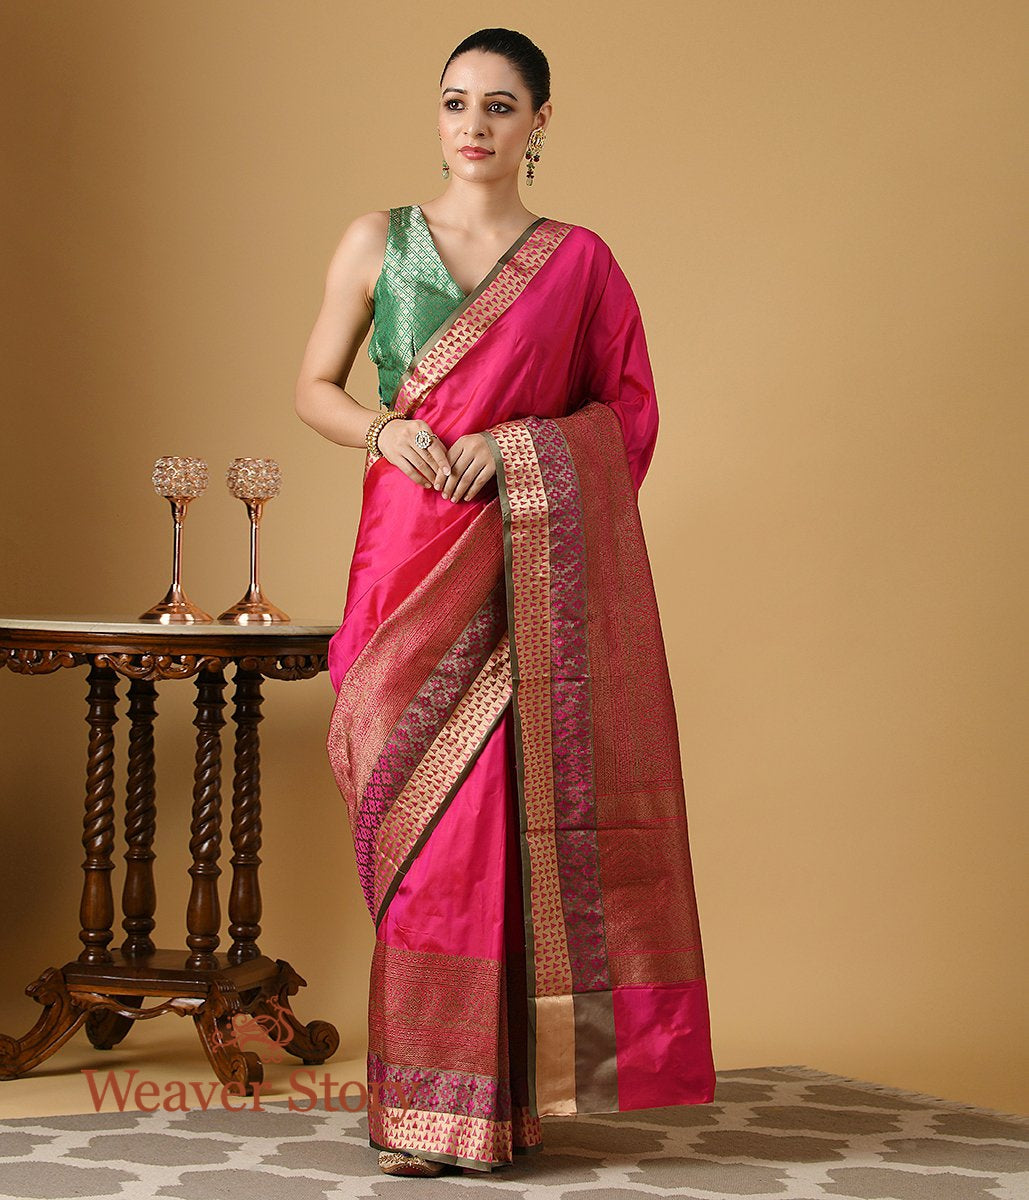 Handwoven Pink Katan Silk Banarasi Saree with Antique Zari Border